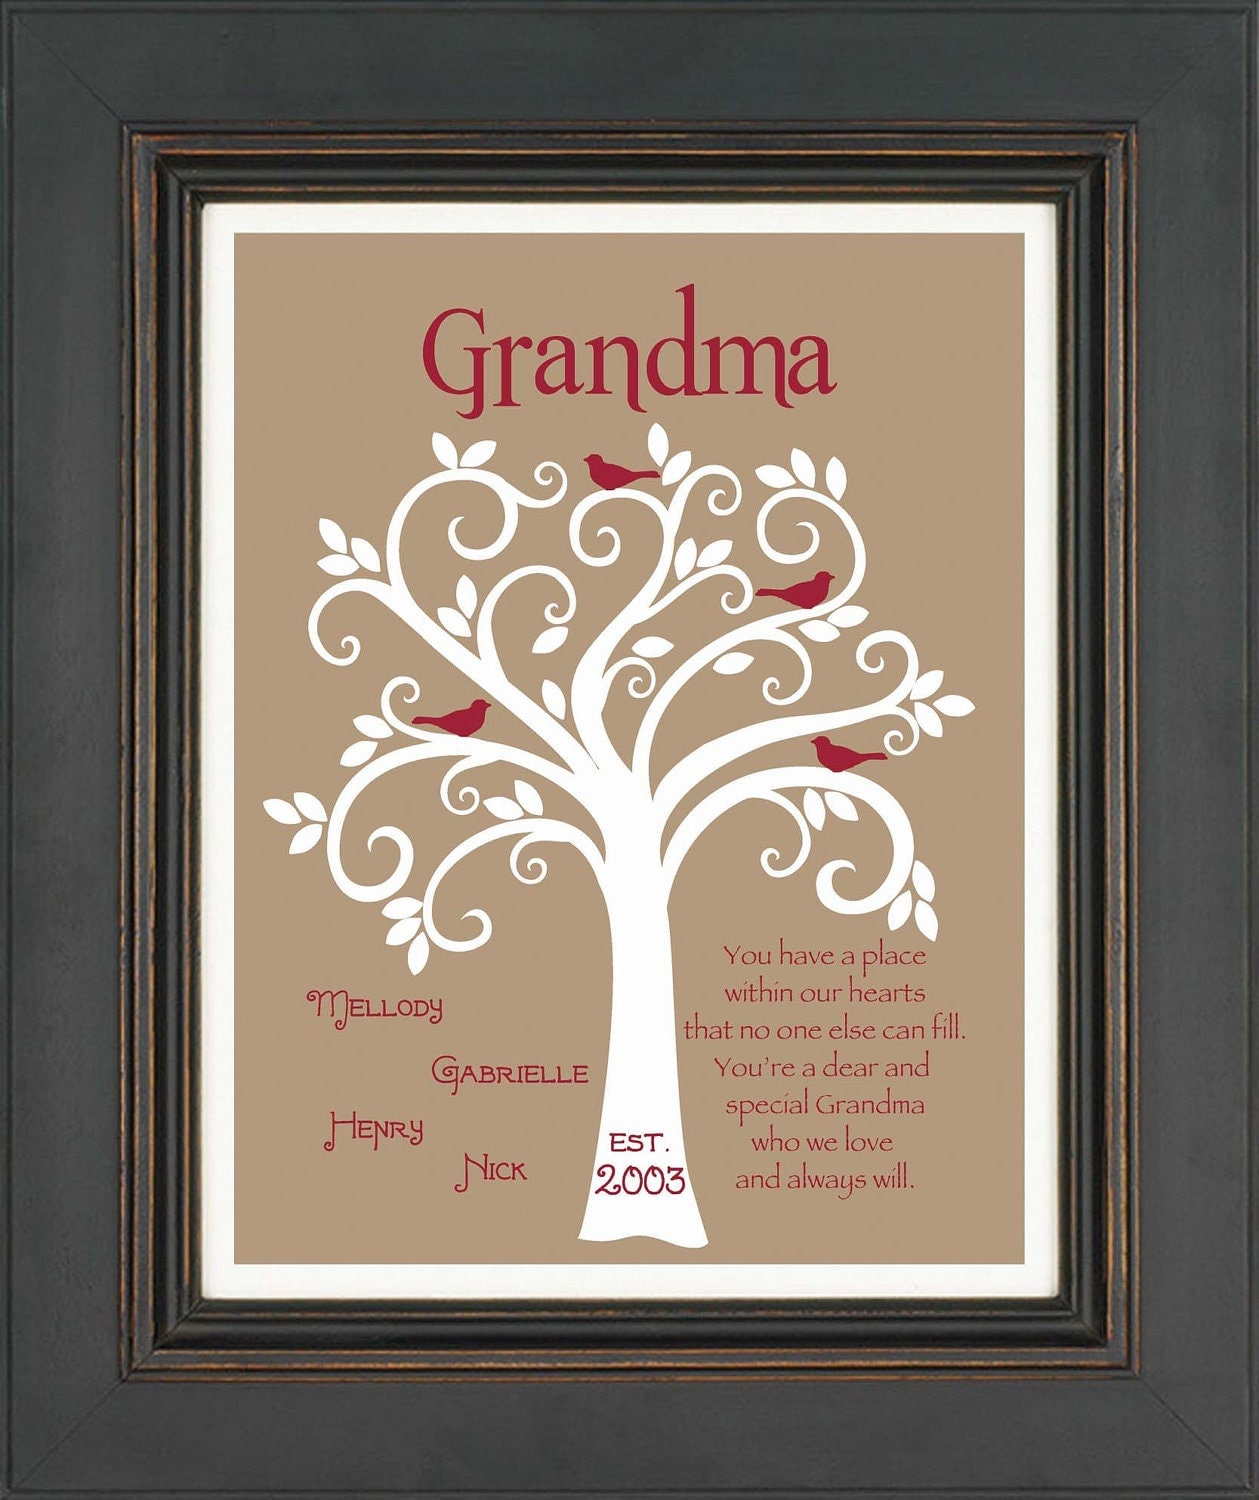 Grandma gift family tree 8x10 custom print personalized for Birthday gifts for grandma from granddaughter